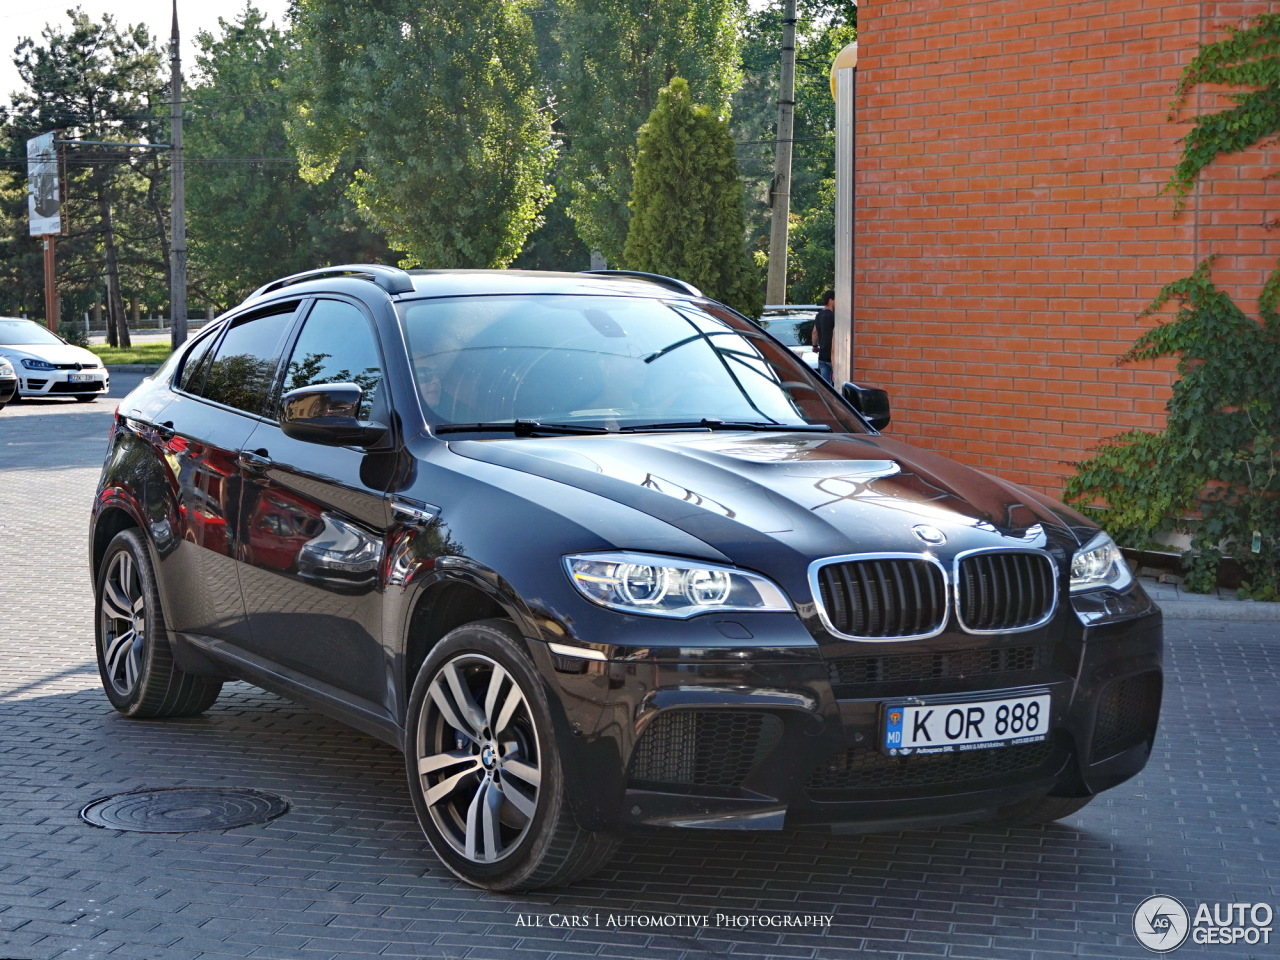 bmw x6 m e71 2013 2 december 2016 autogespot. Black Bedroom Furniture Sets. Home Design Ideas